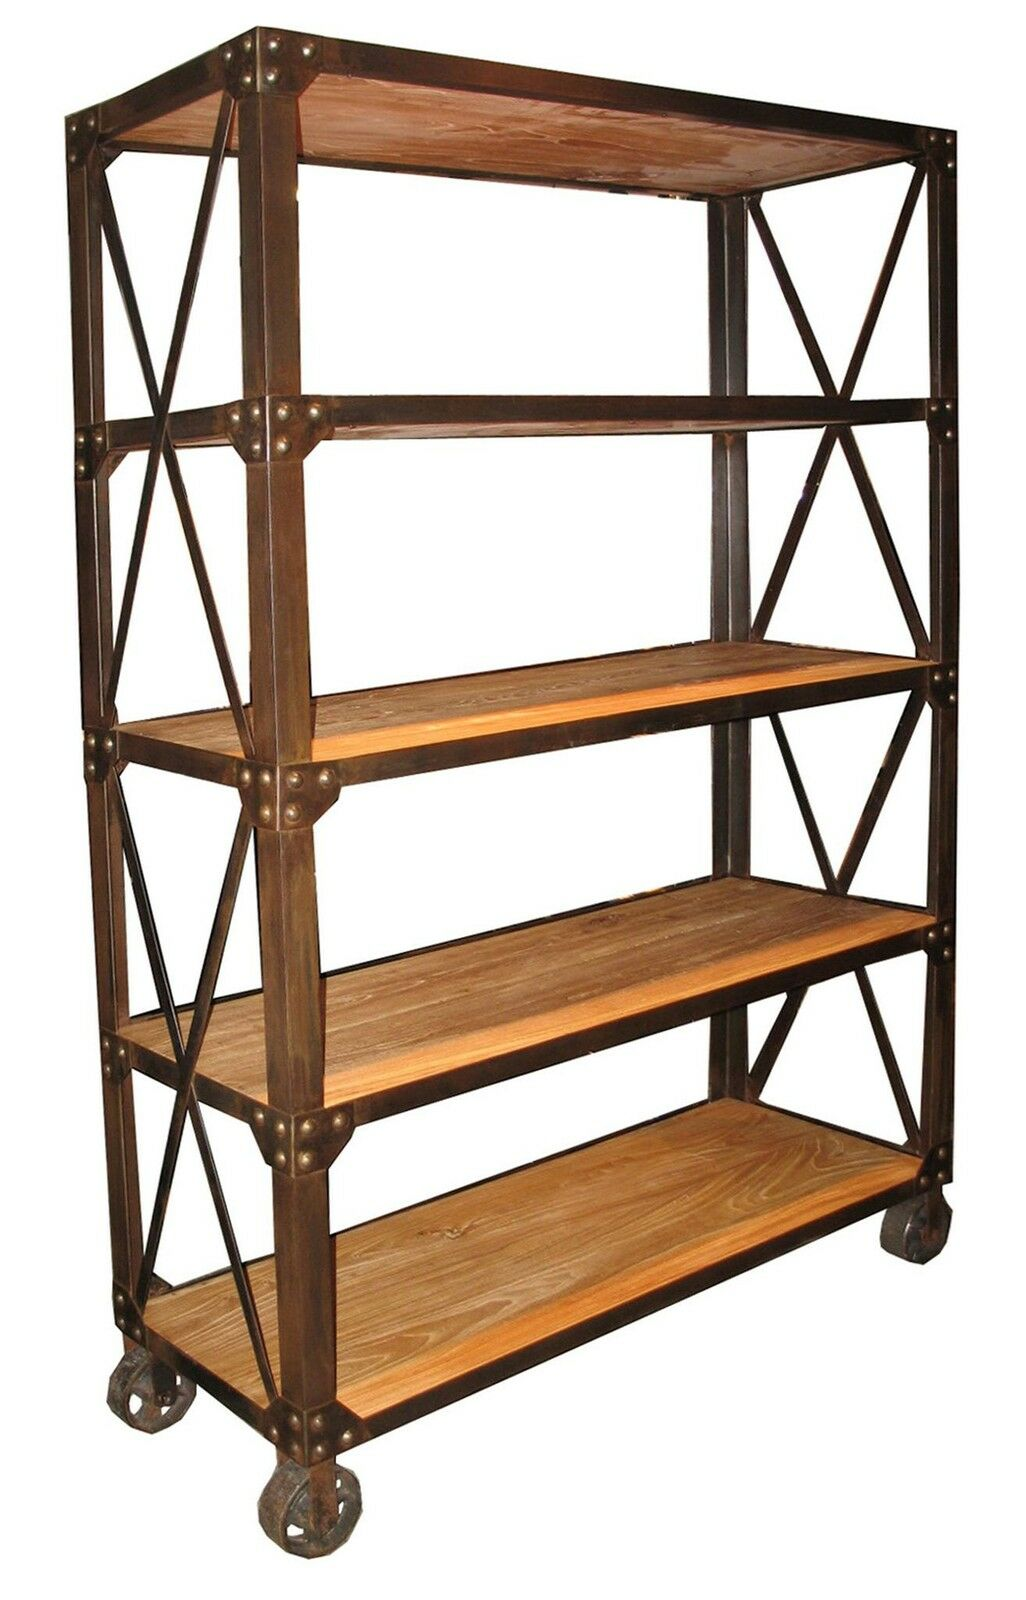 78quot Tall Bookcase Elm Wood 5 Shelves Rusty Metal On